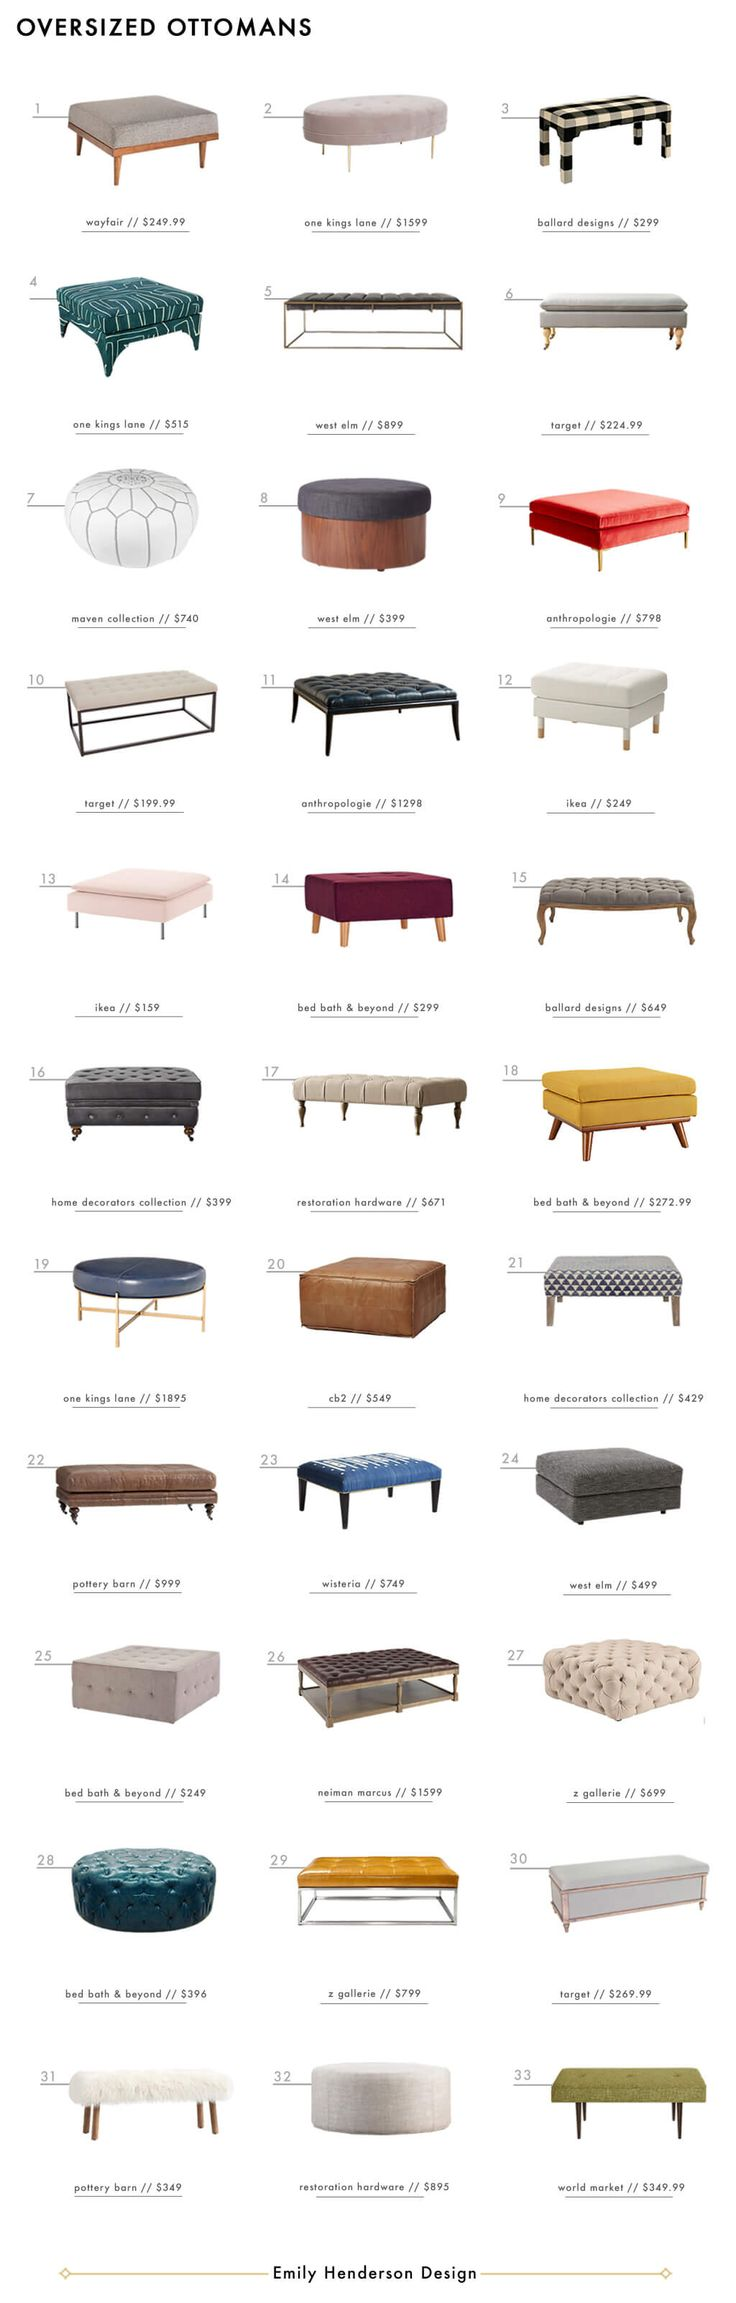 Product Image for Skyline Furniture Tufted Cocktail Ottoman 1 out of 3